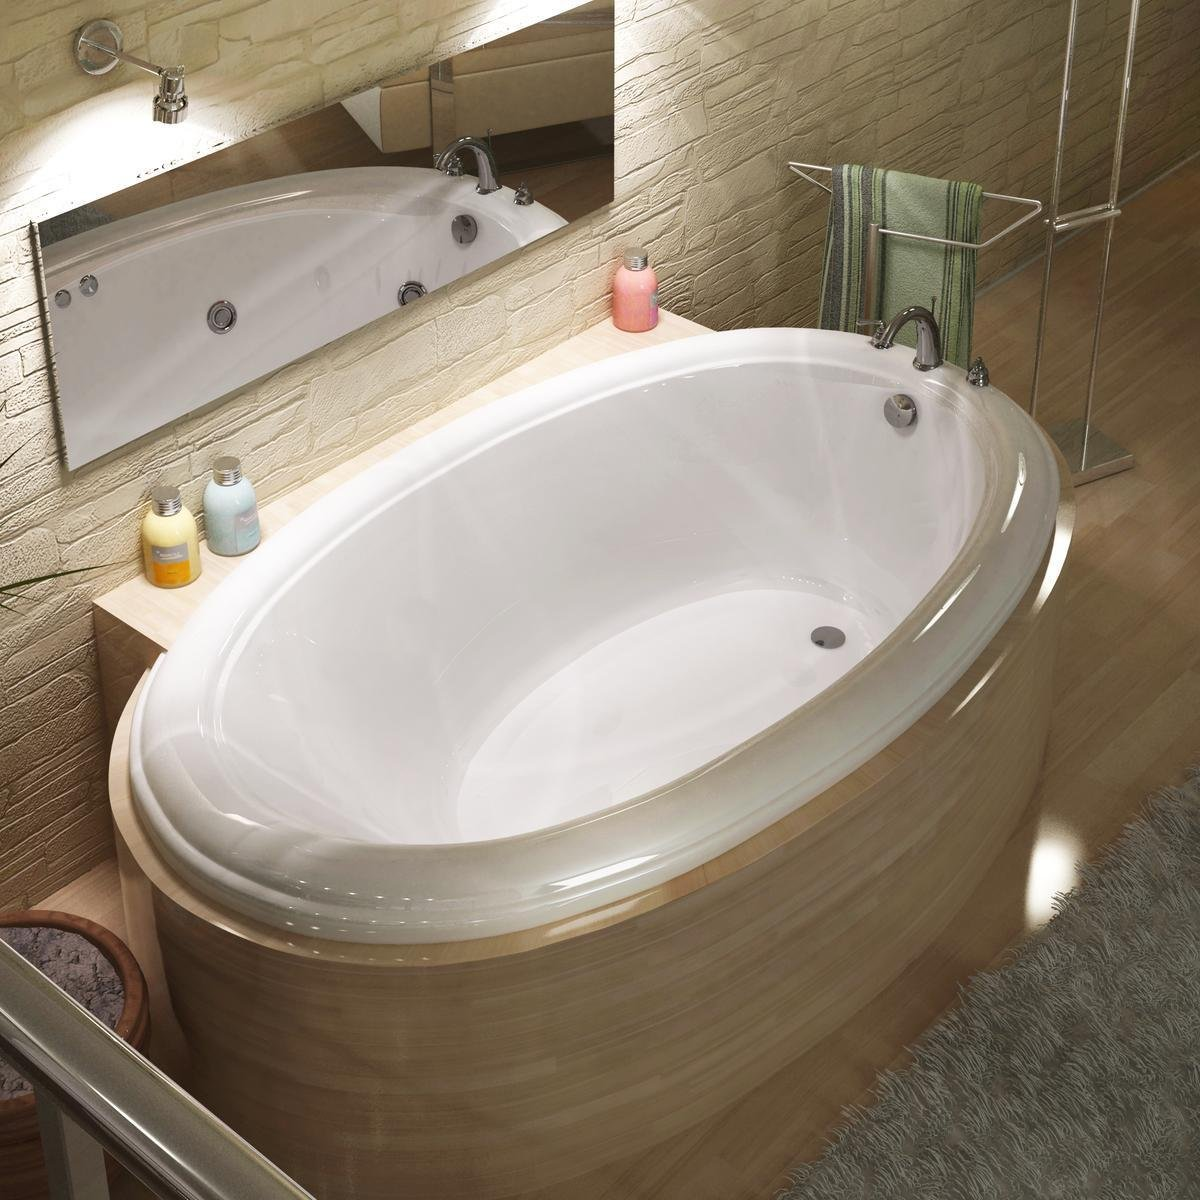 Sea Spa Tubs S3660P Tubs Petite 36 by 60 by 23-Inch Oval Soaking ...